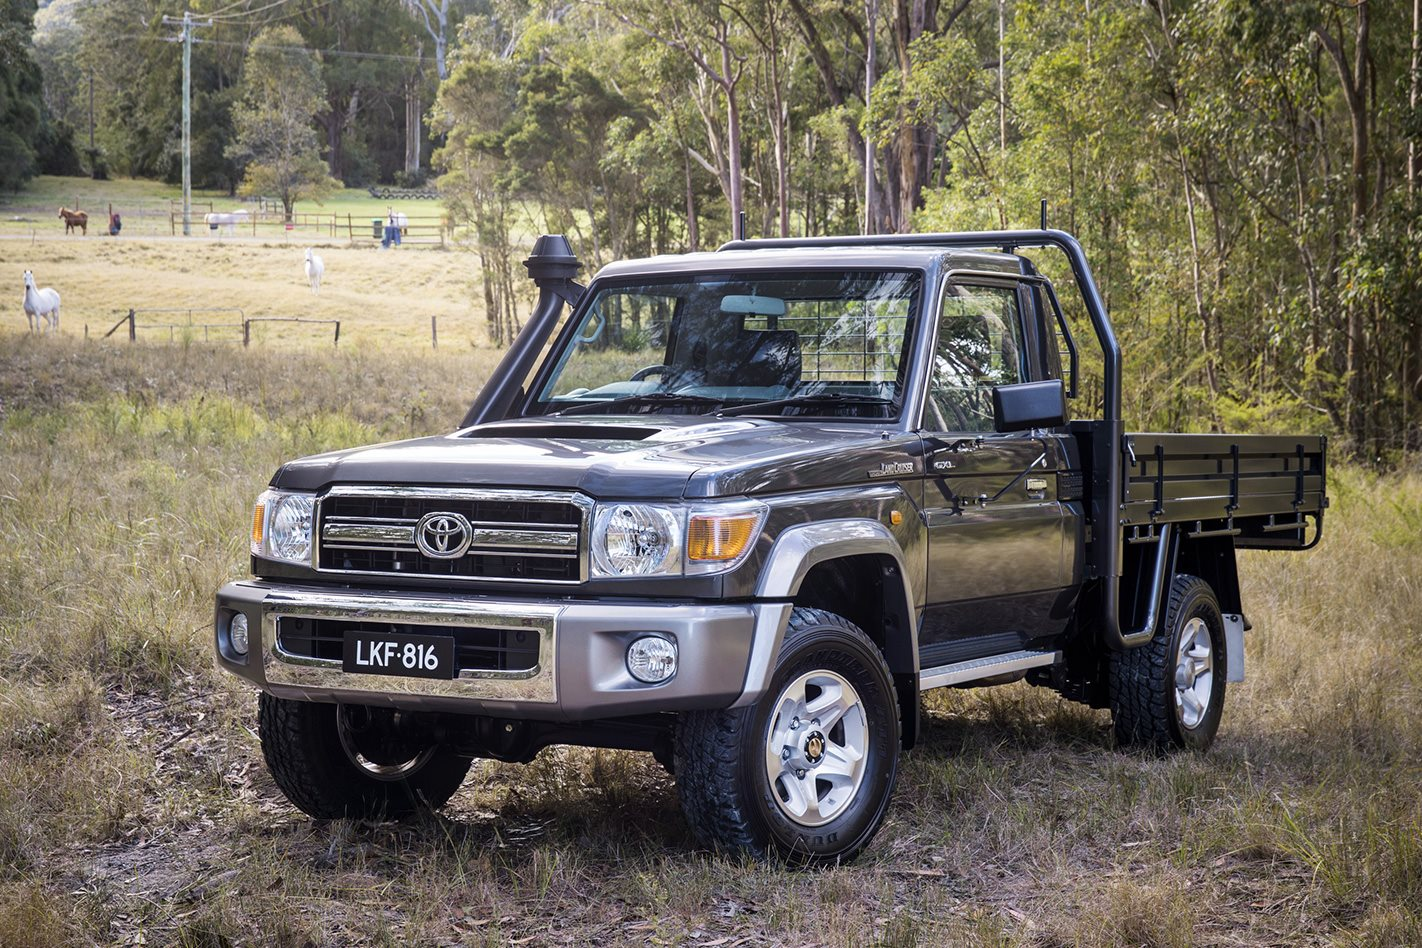 Toyota Landcruiser 70 Series Receives Updates Ahead Of Q4